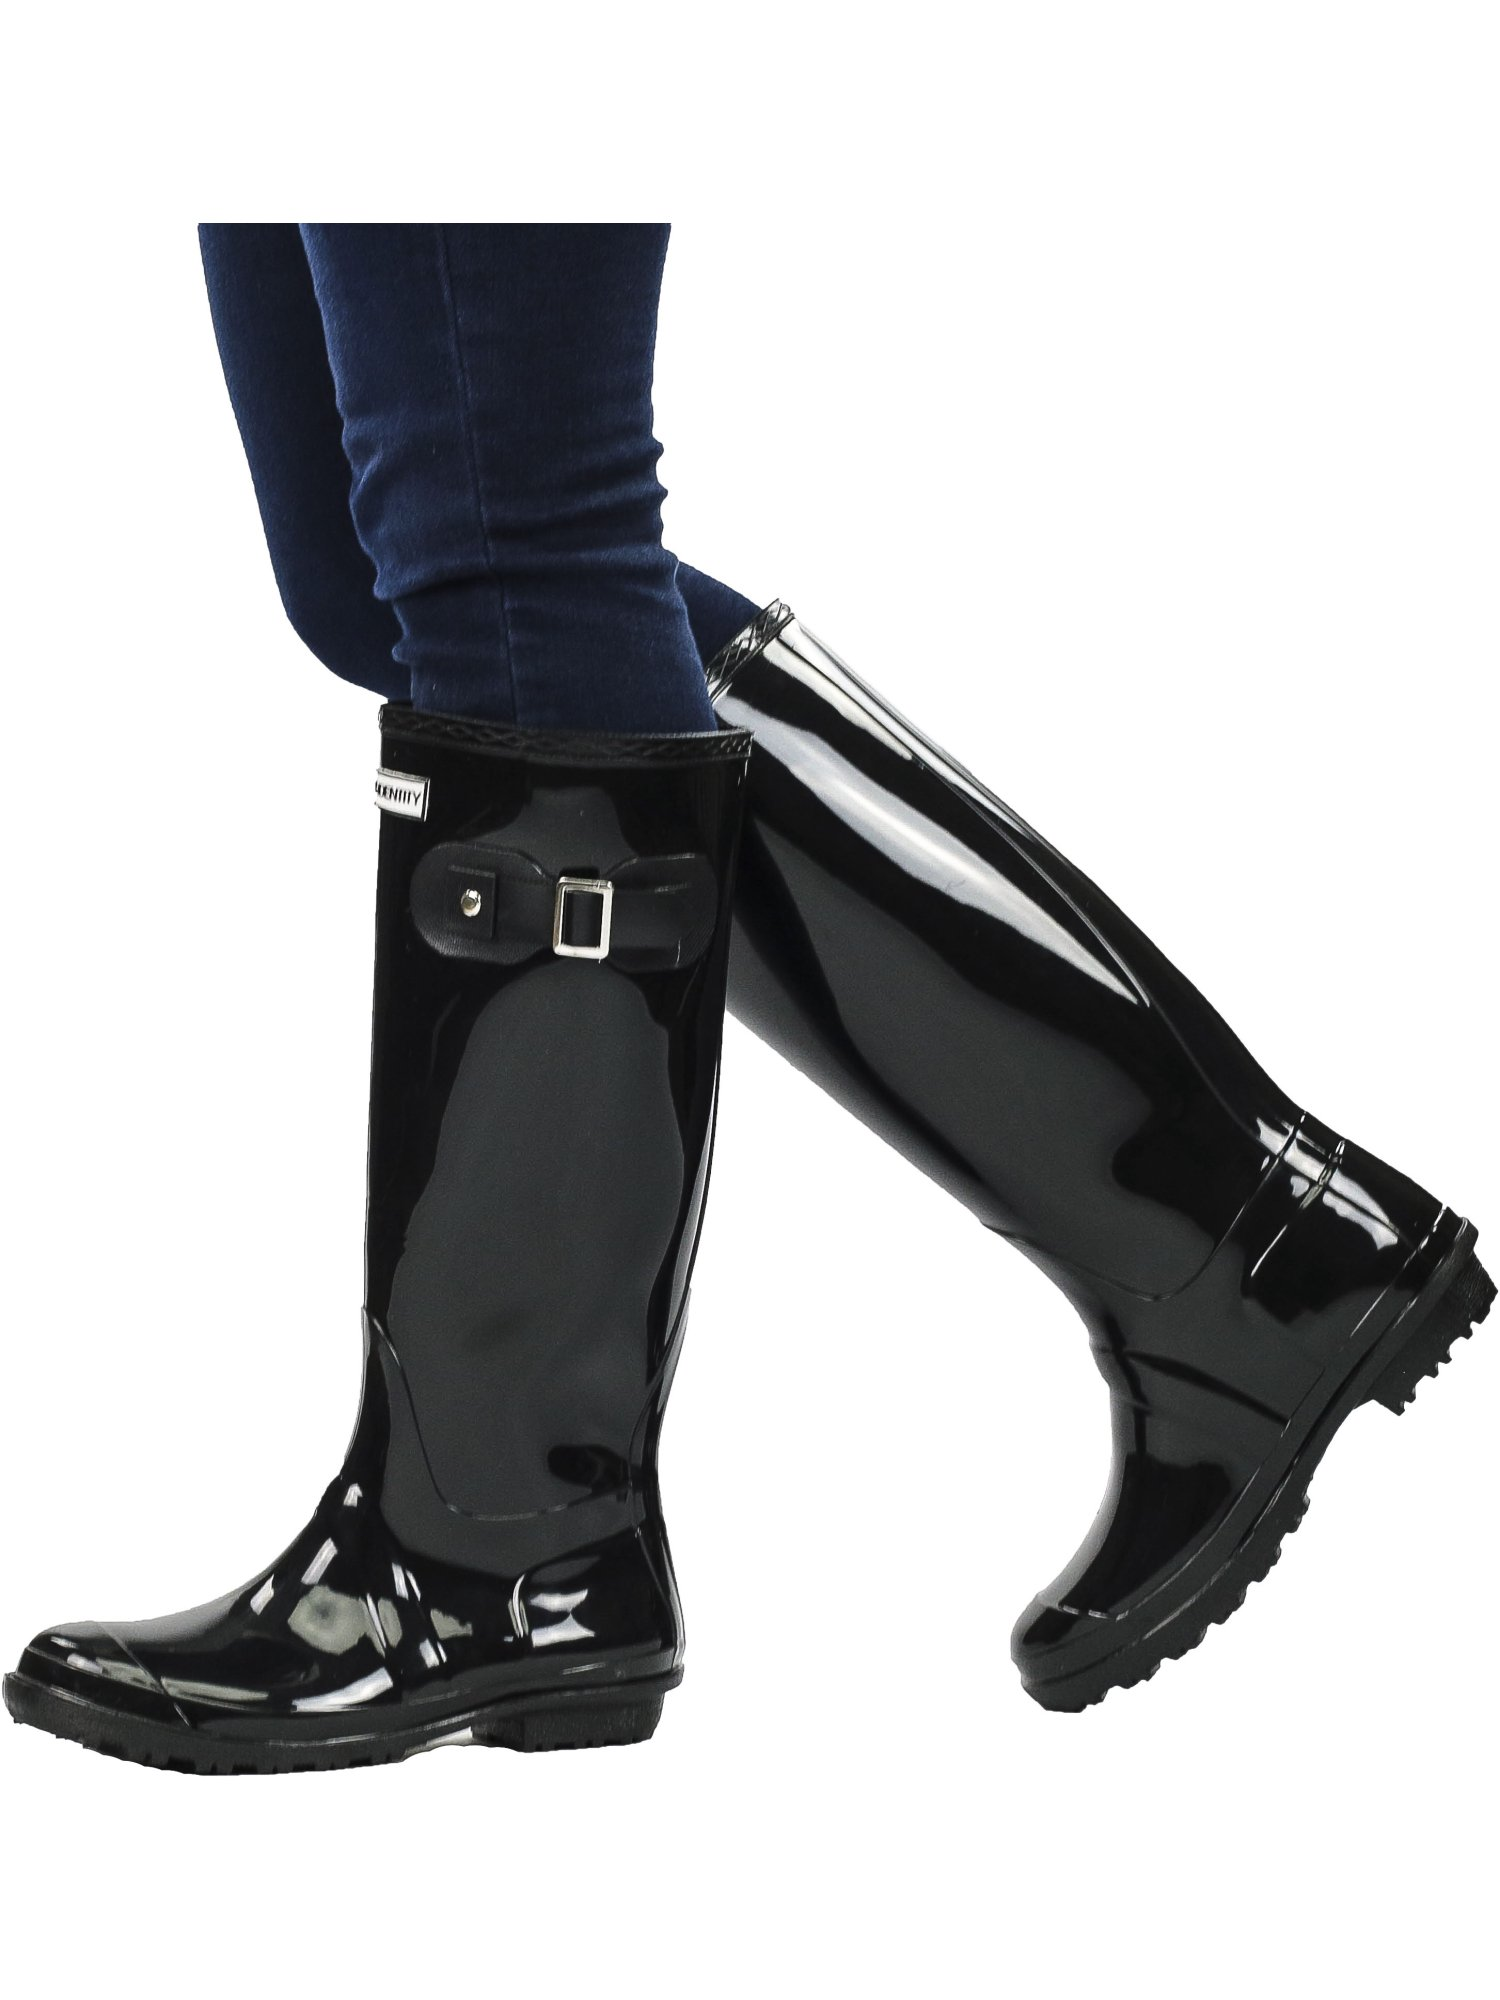 Exotic-Identity-Tall-Rain-Boots-Non-slip-100-Waterproof-for-Women